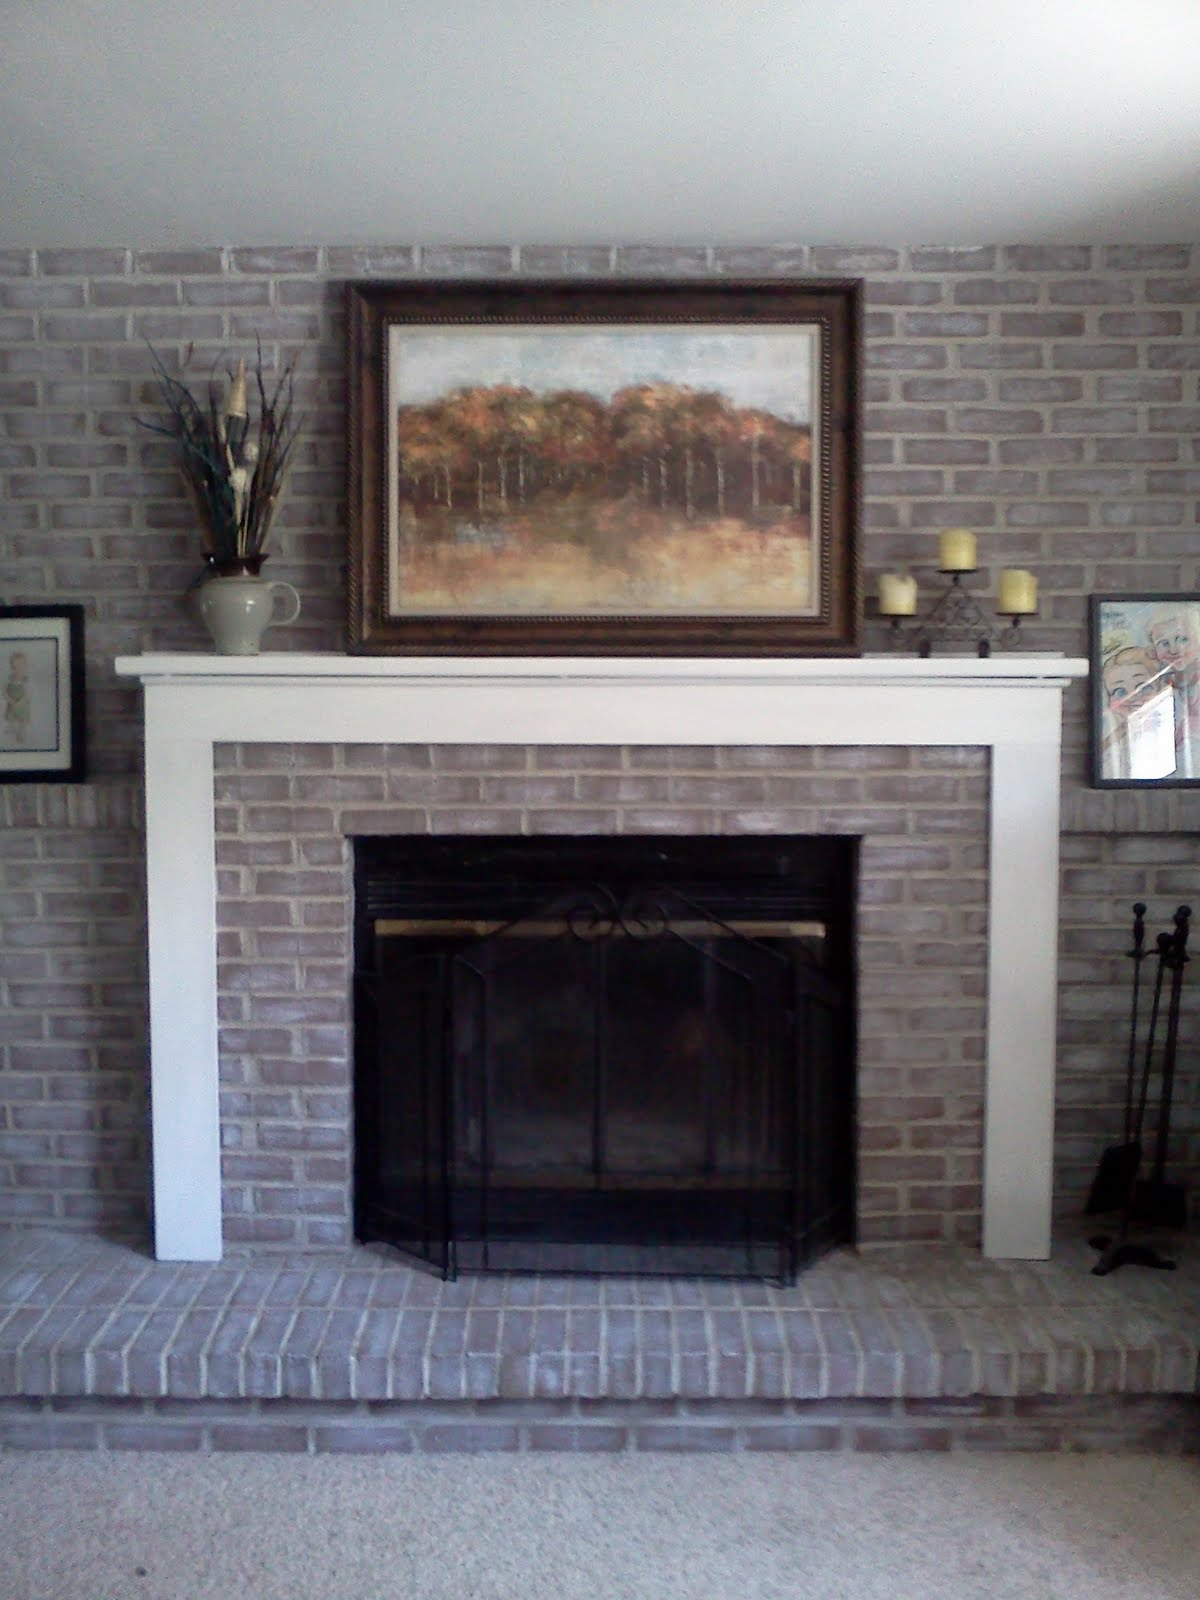 Diy brick fireplace makeover fireplace design ideas Brick fireplace wall decorating ideas